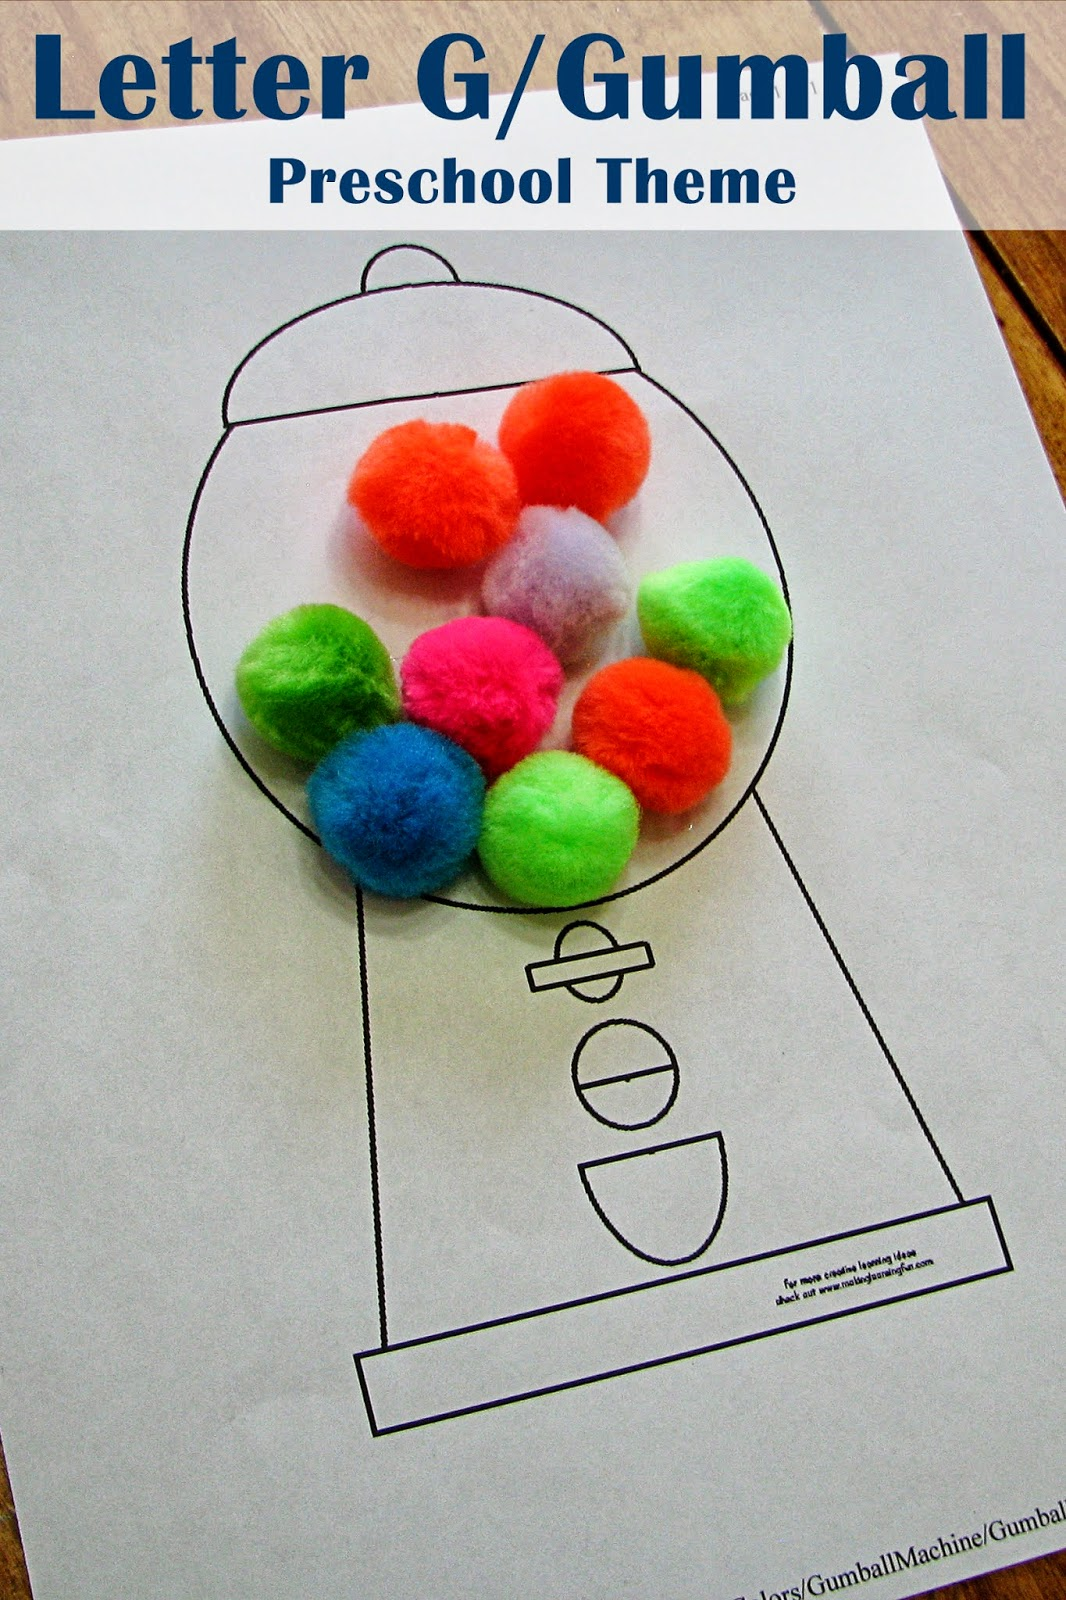 mommys little helper letter ggumball preschool theme